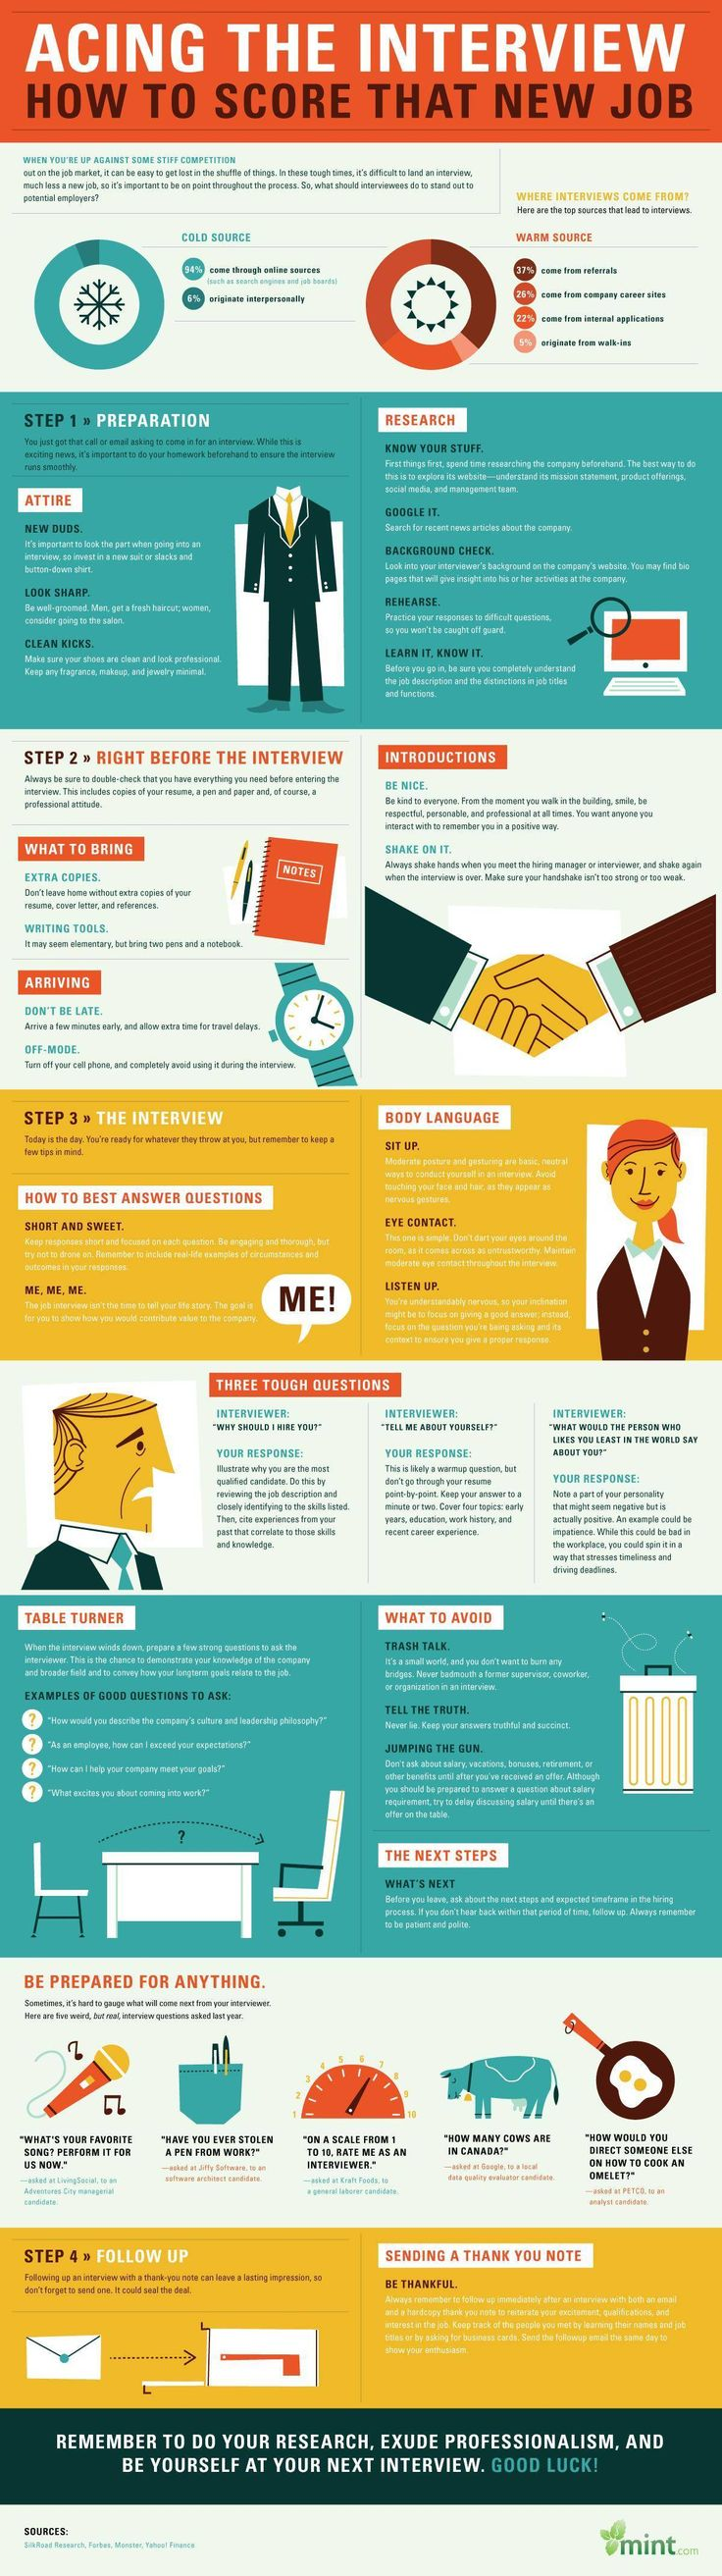 best images about my perfect resume infographic my girlfriend sent me these before an interview and now i scored my first job at